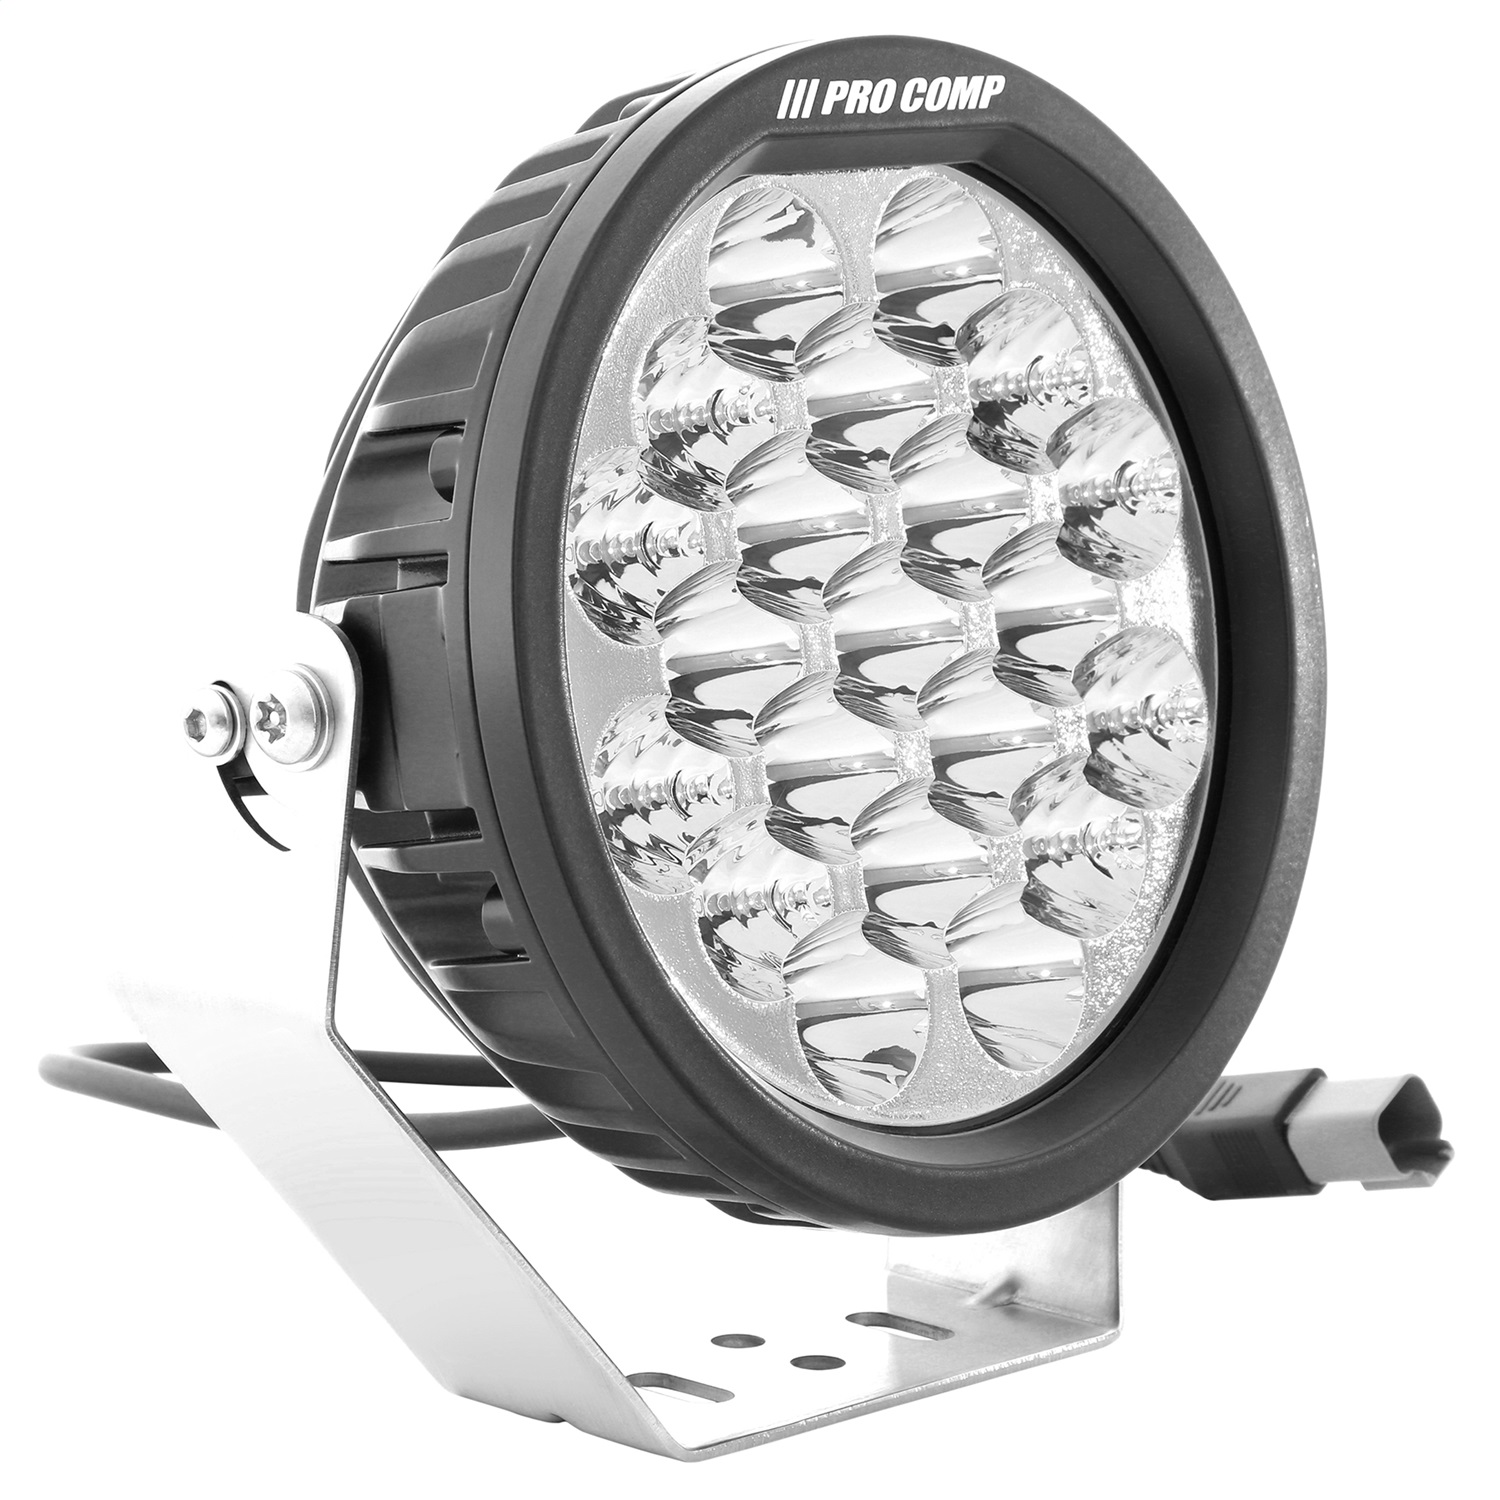 Pro Comp Suspension 76502 Round LED Motorsports Light